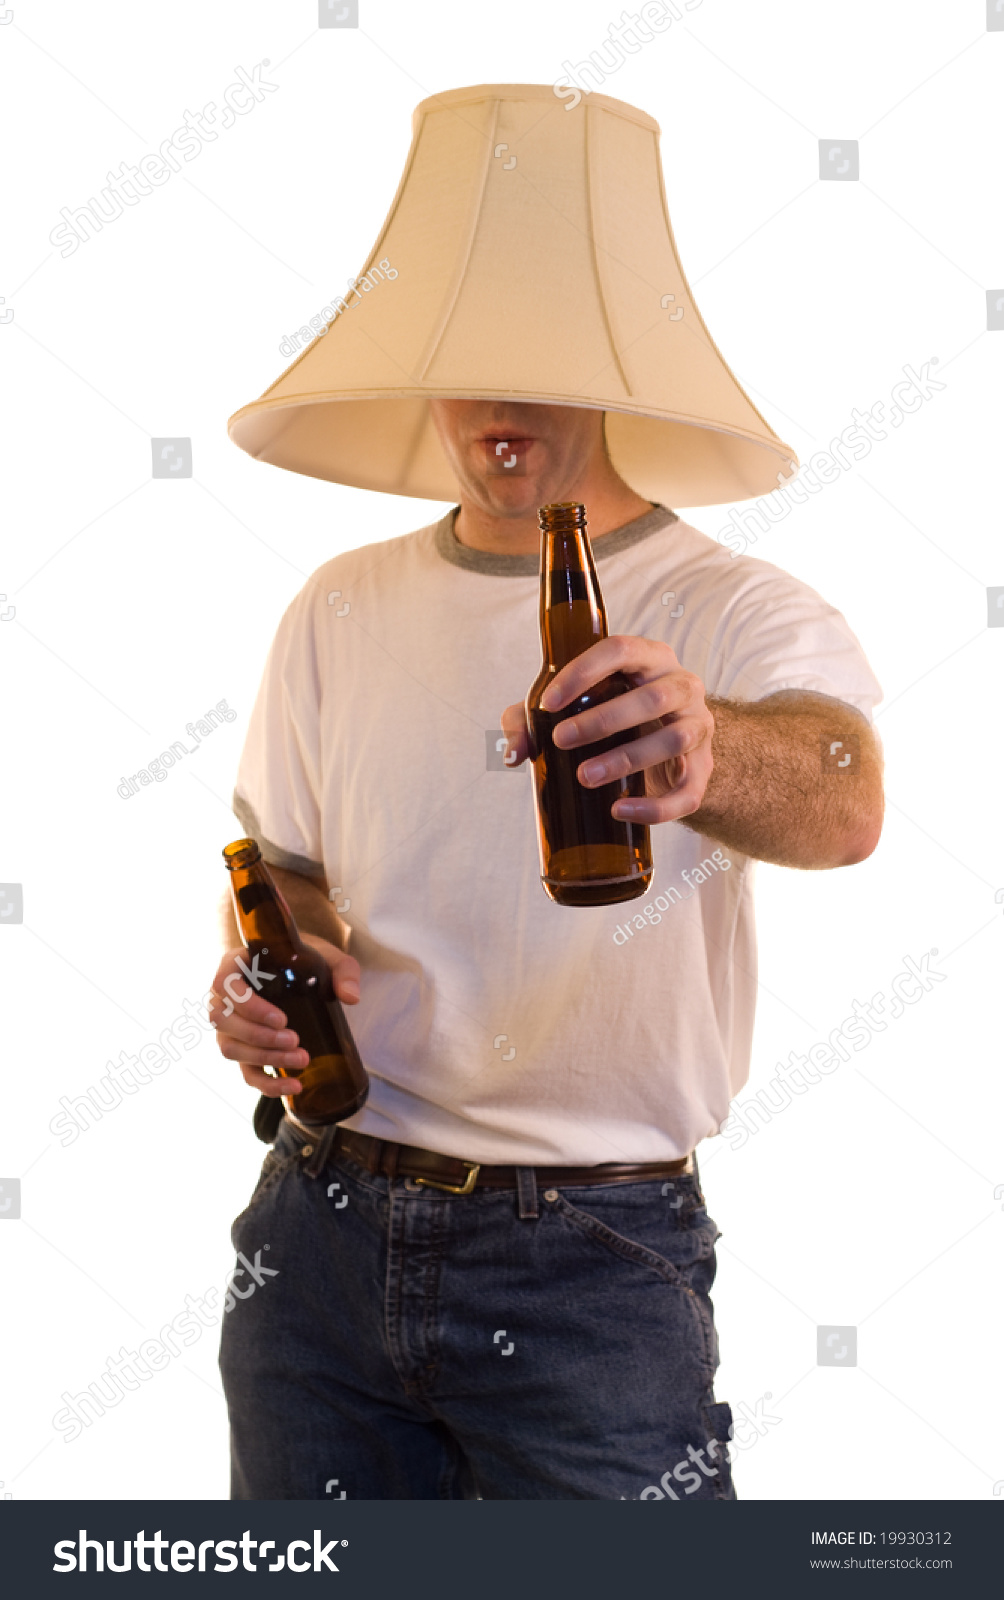 Lamp Shade On Head : Young man wearing lamp shade on stock photo